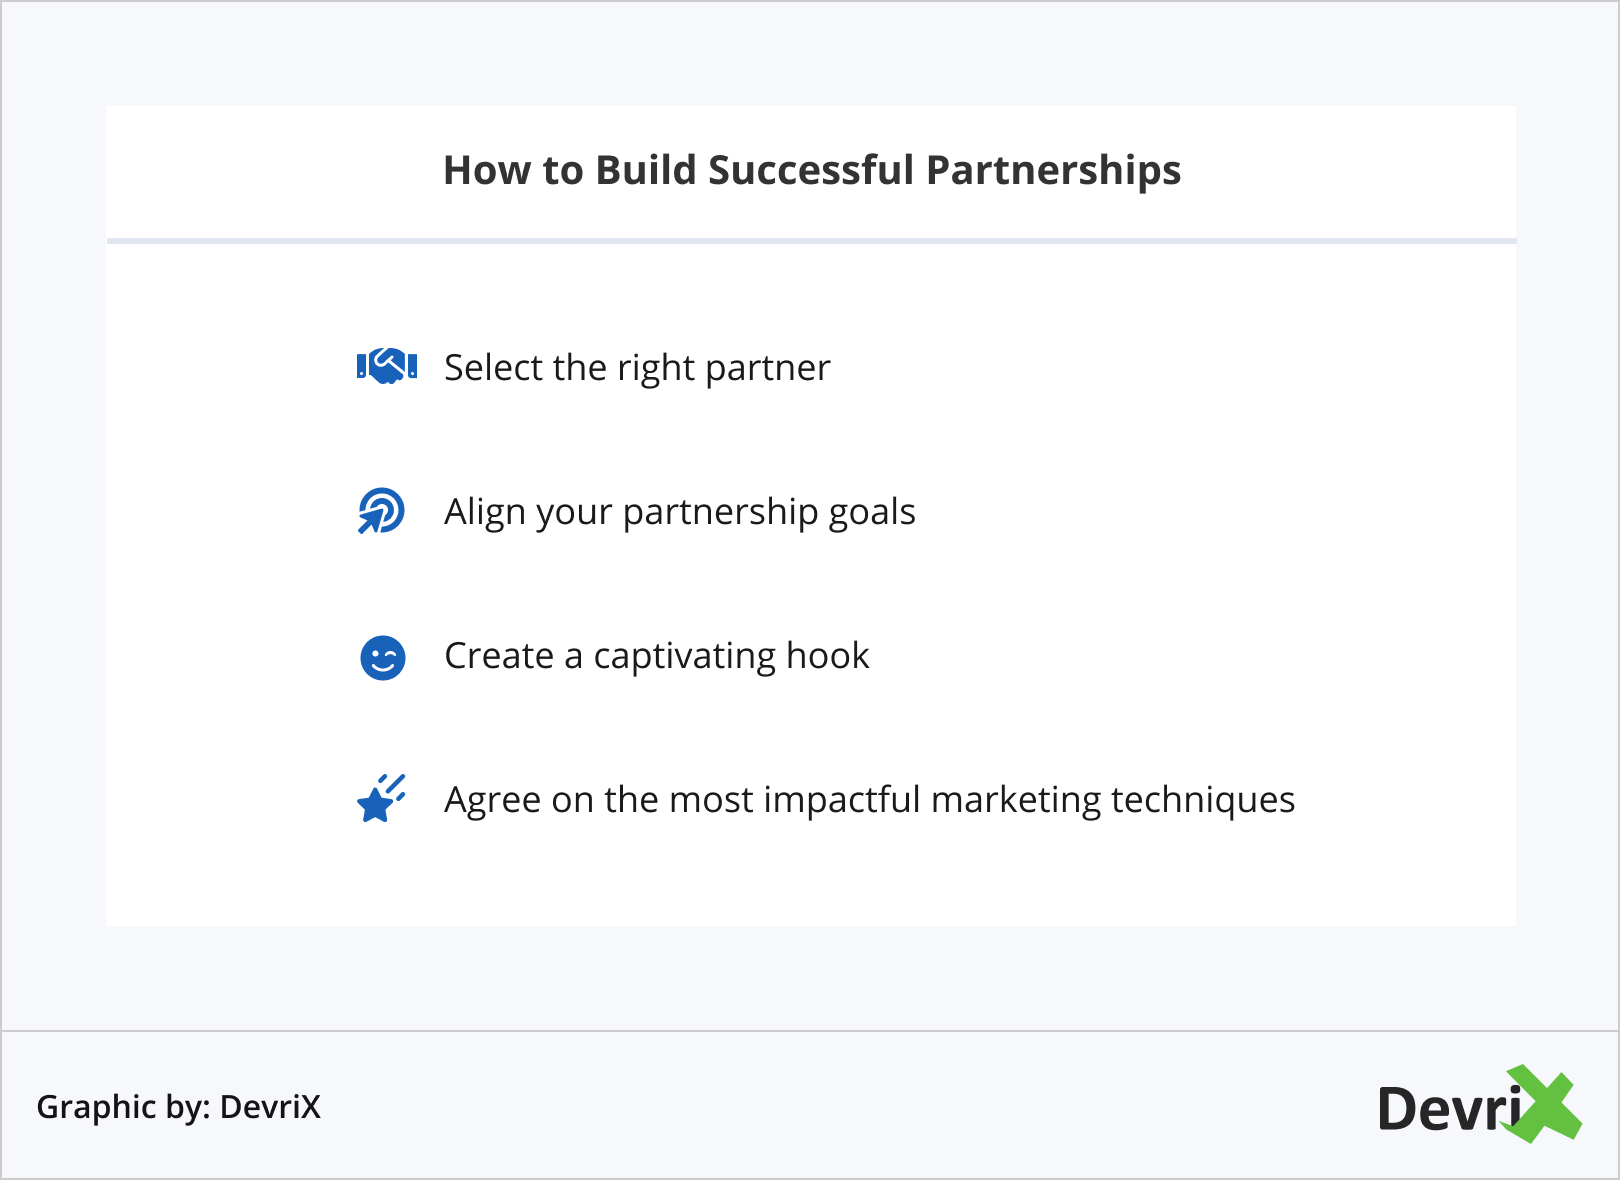 How to Build Successful Partnerships